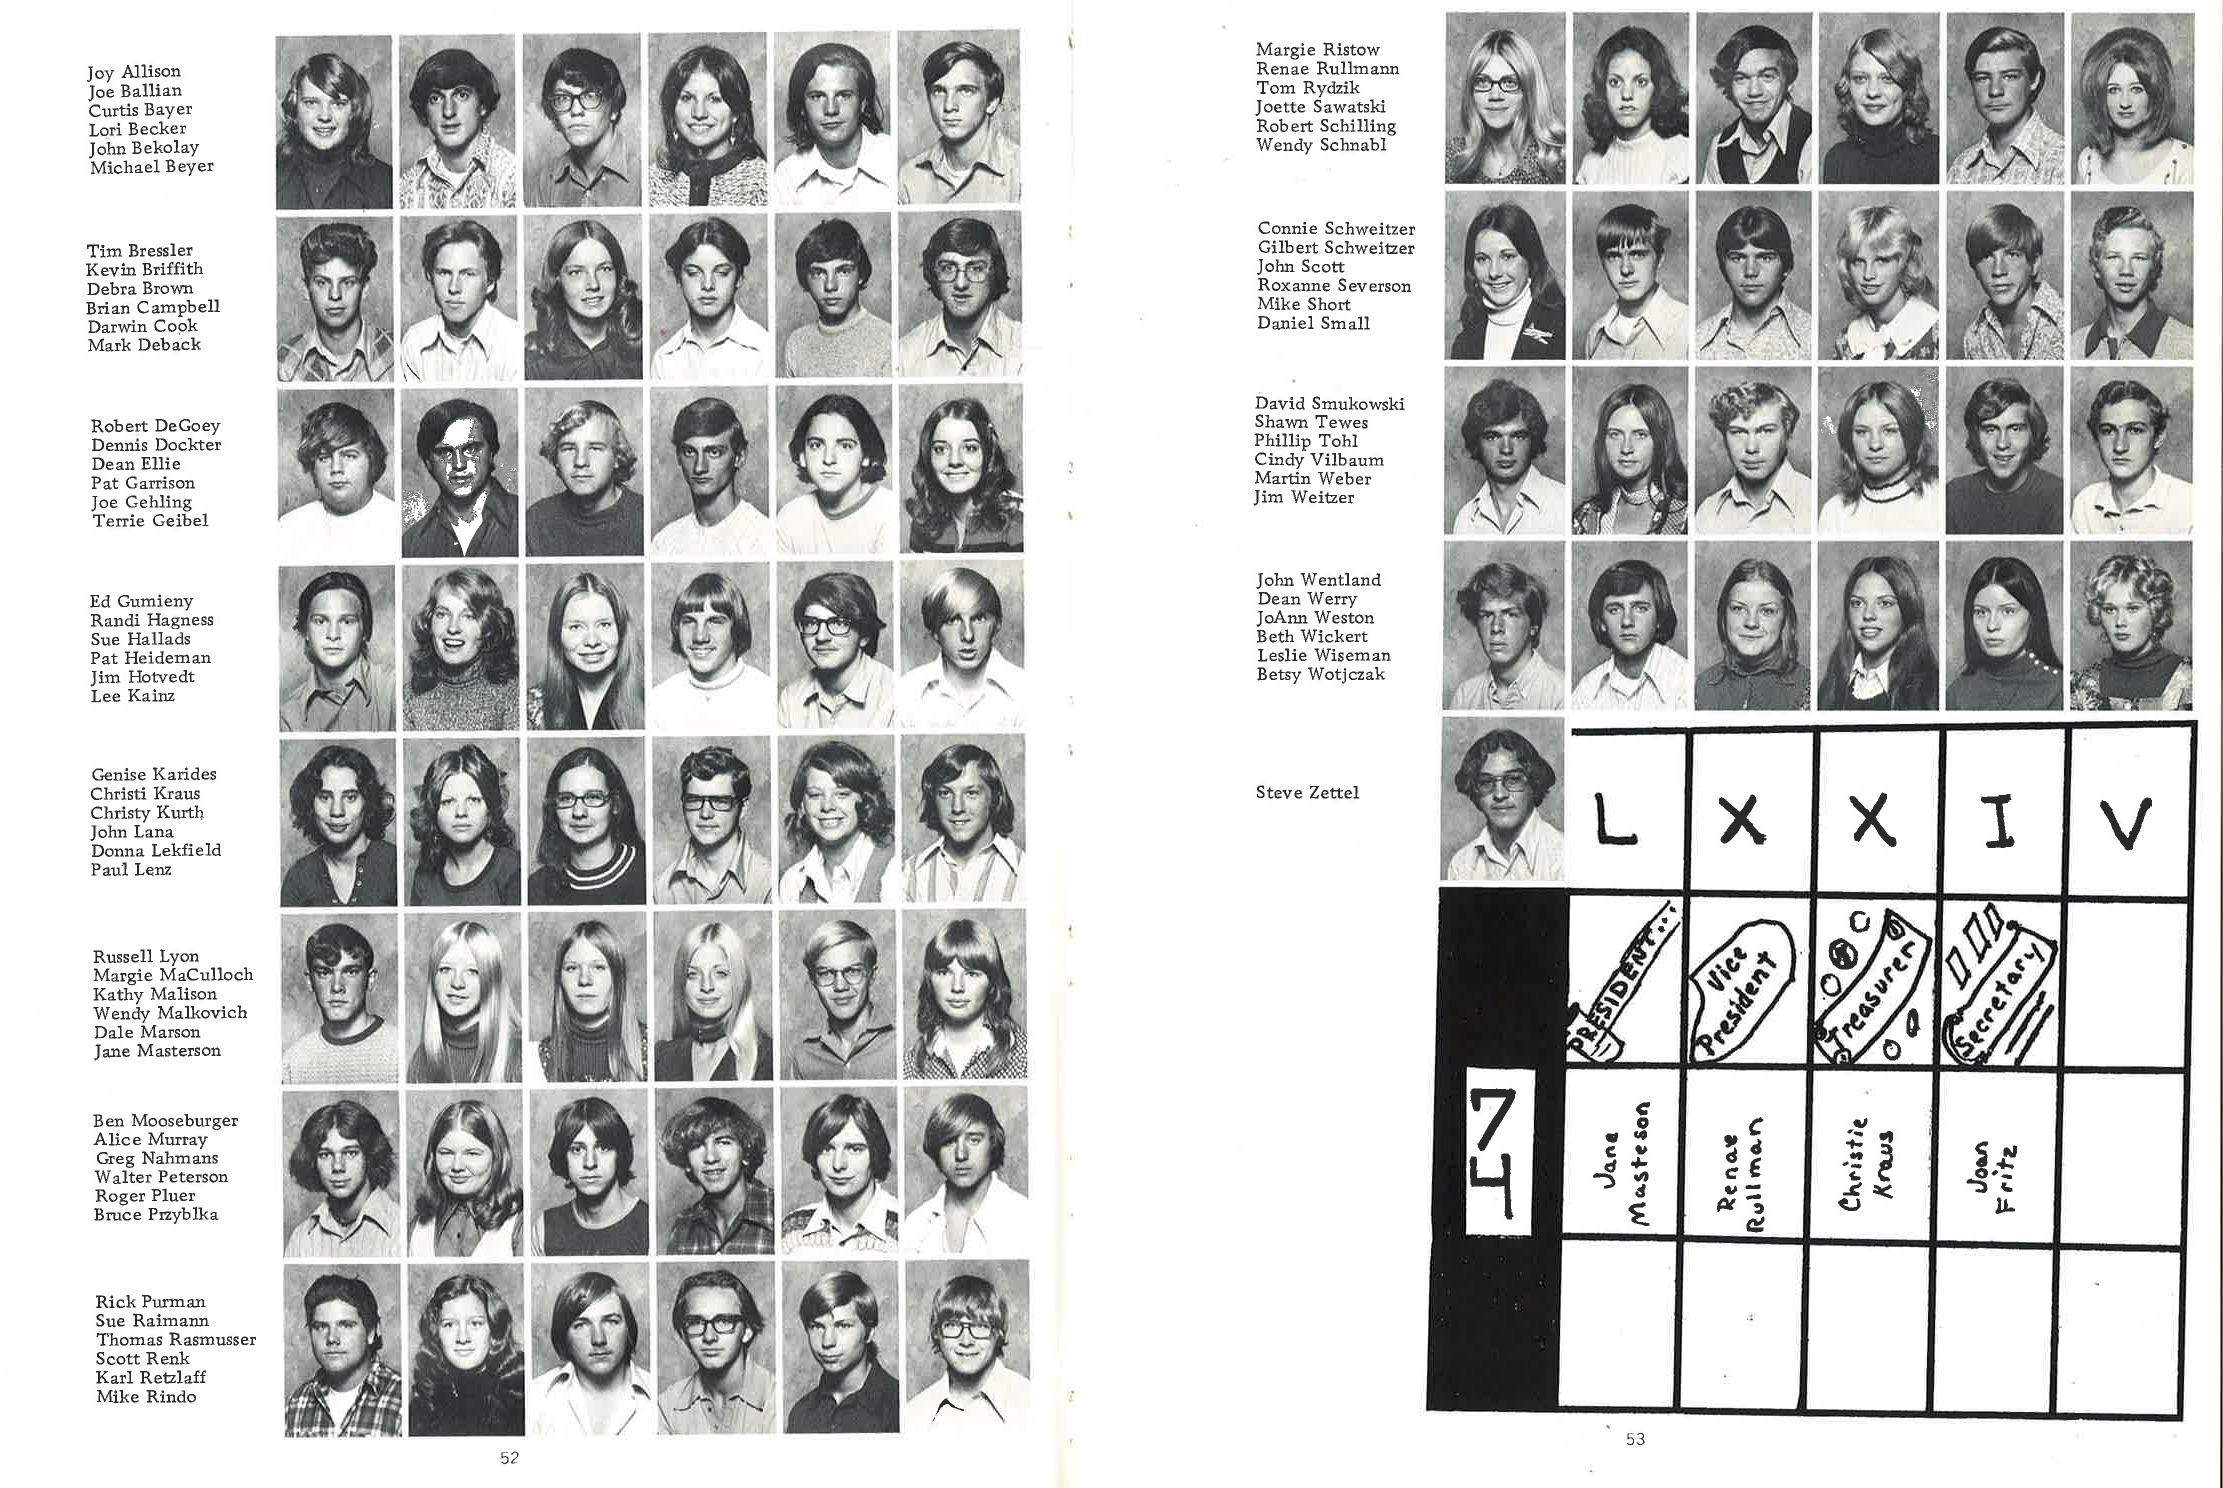 1973_Yearbook_52-53.jpg